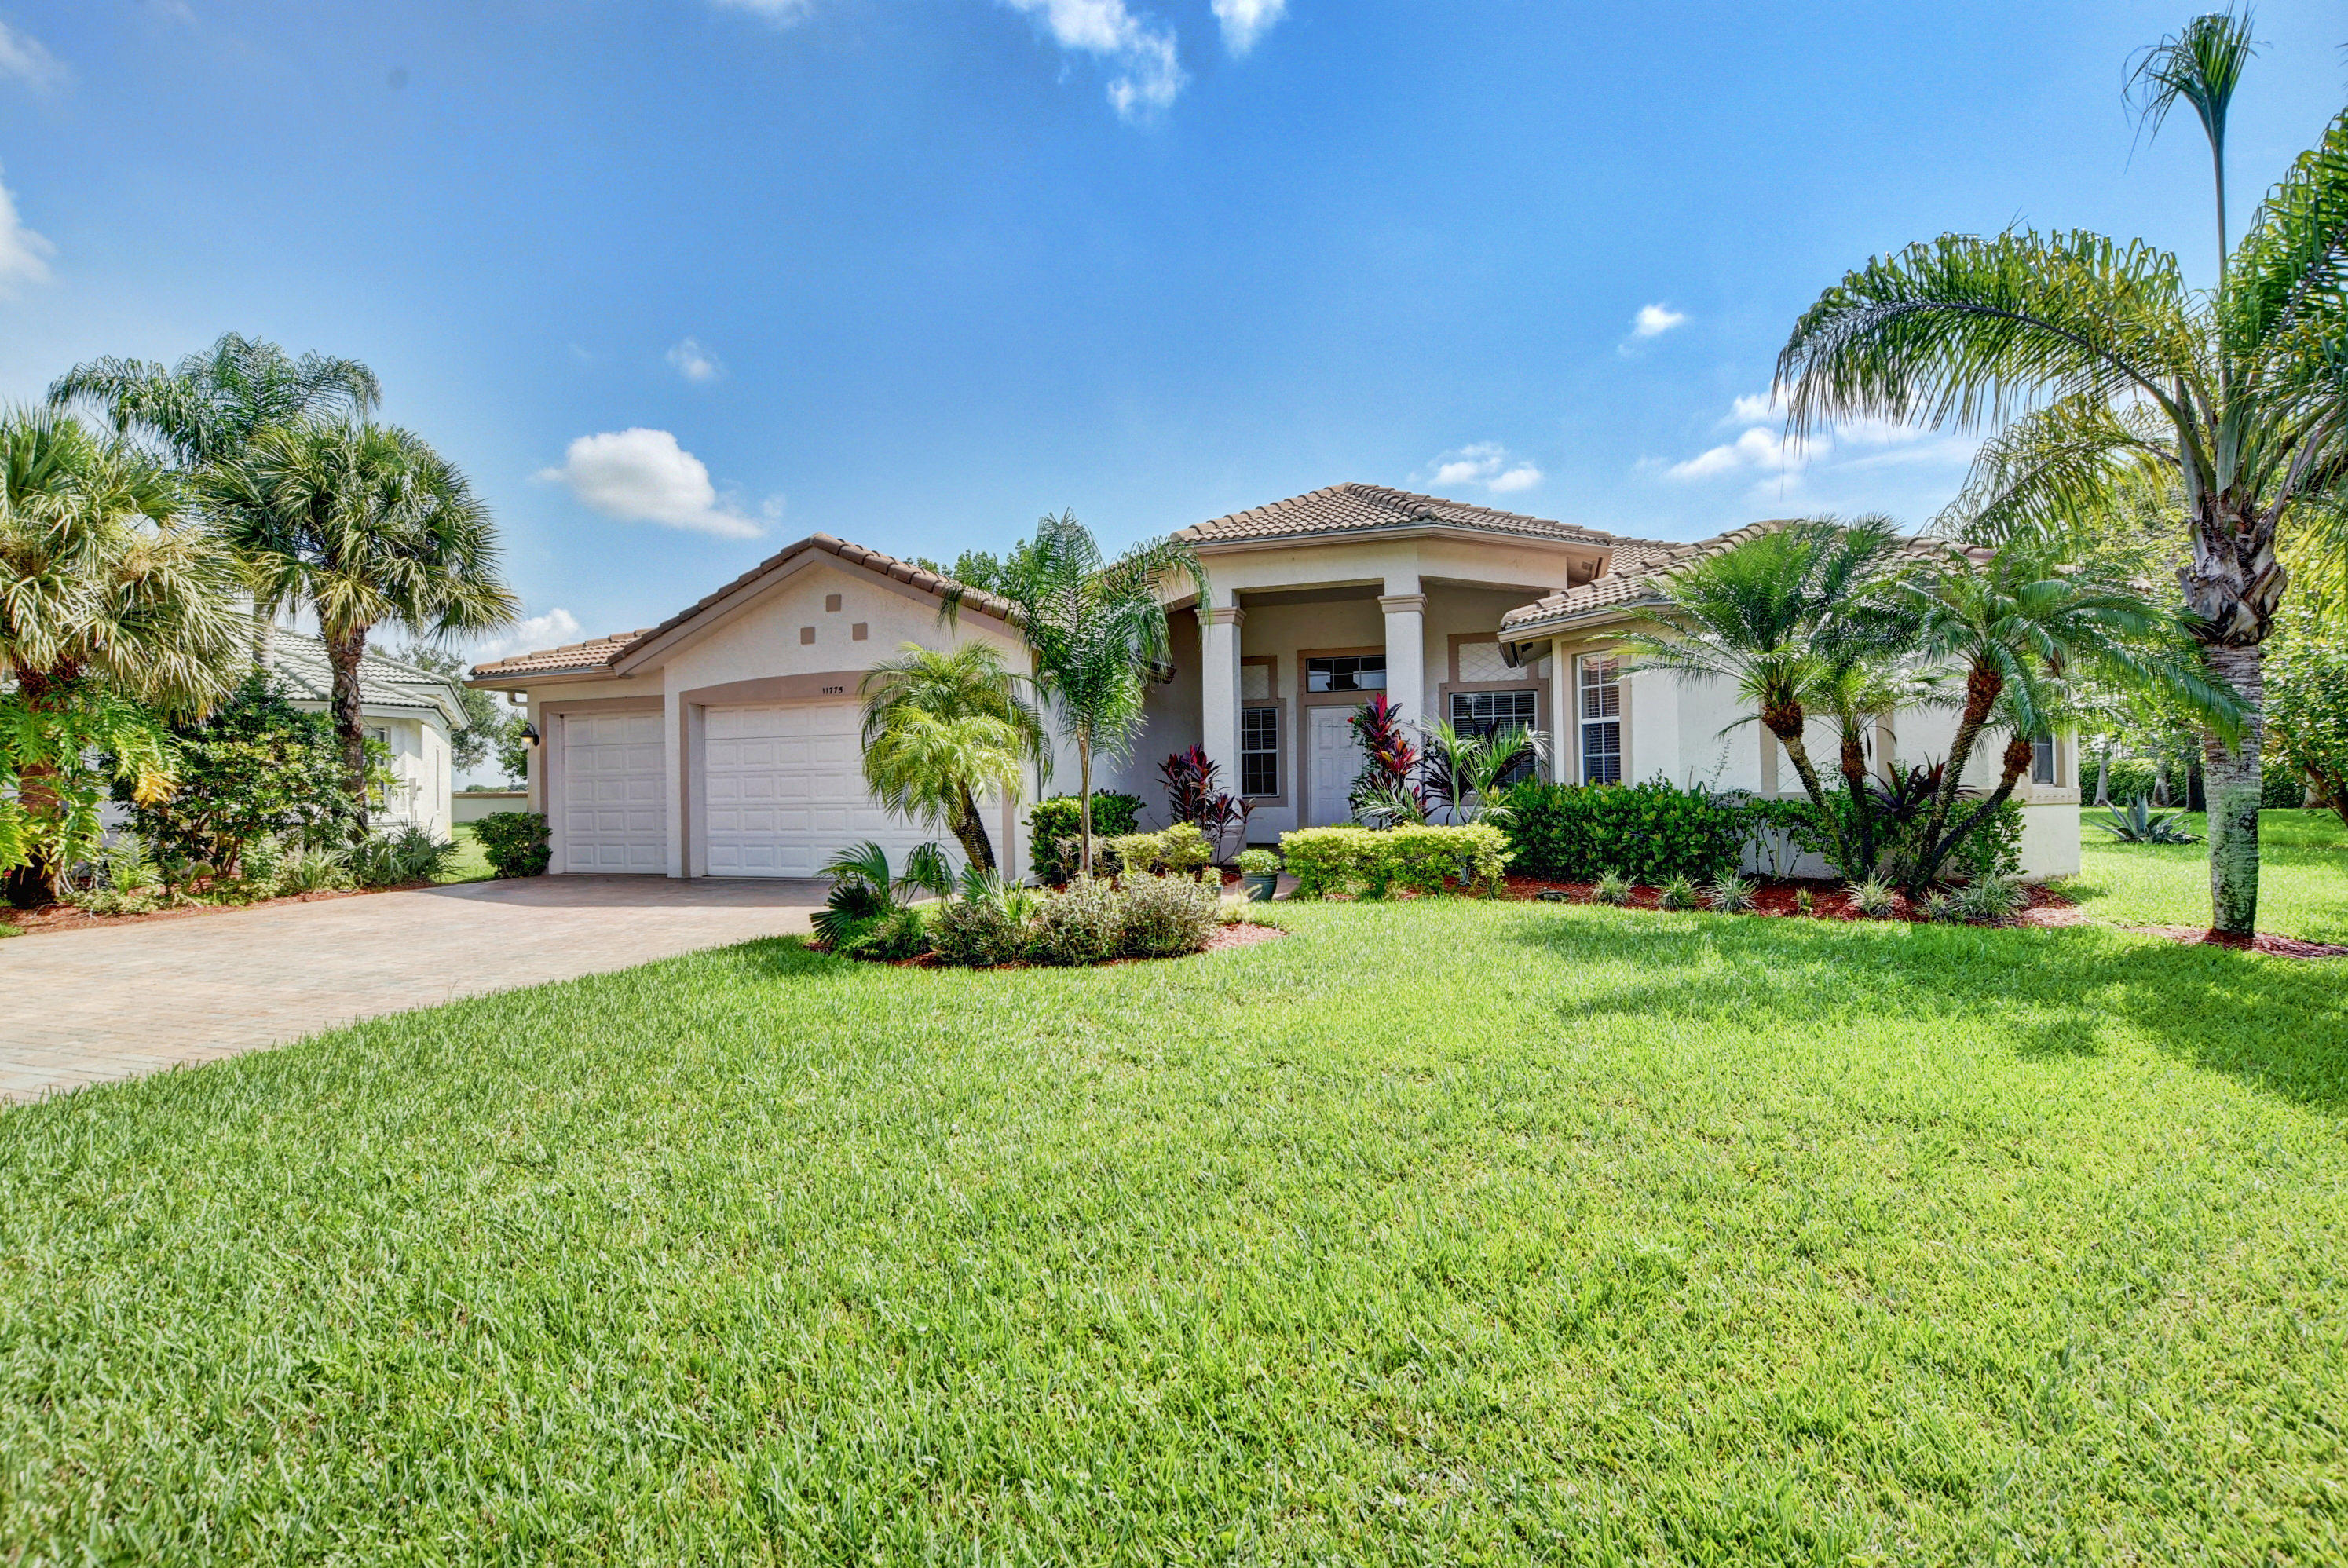 11775 Osprey Point Circle, Lake Worth, FL 33449